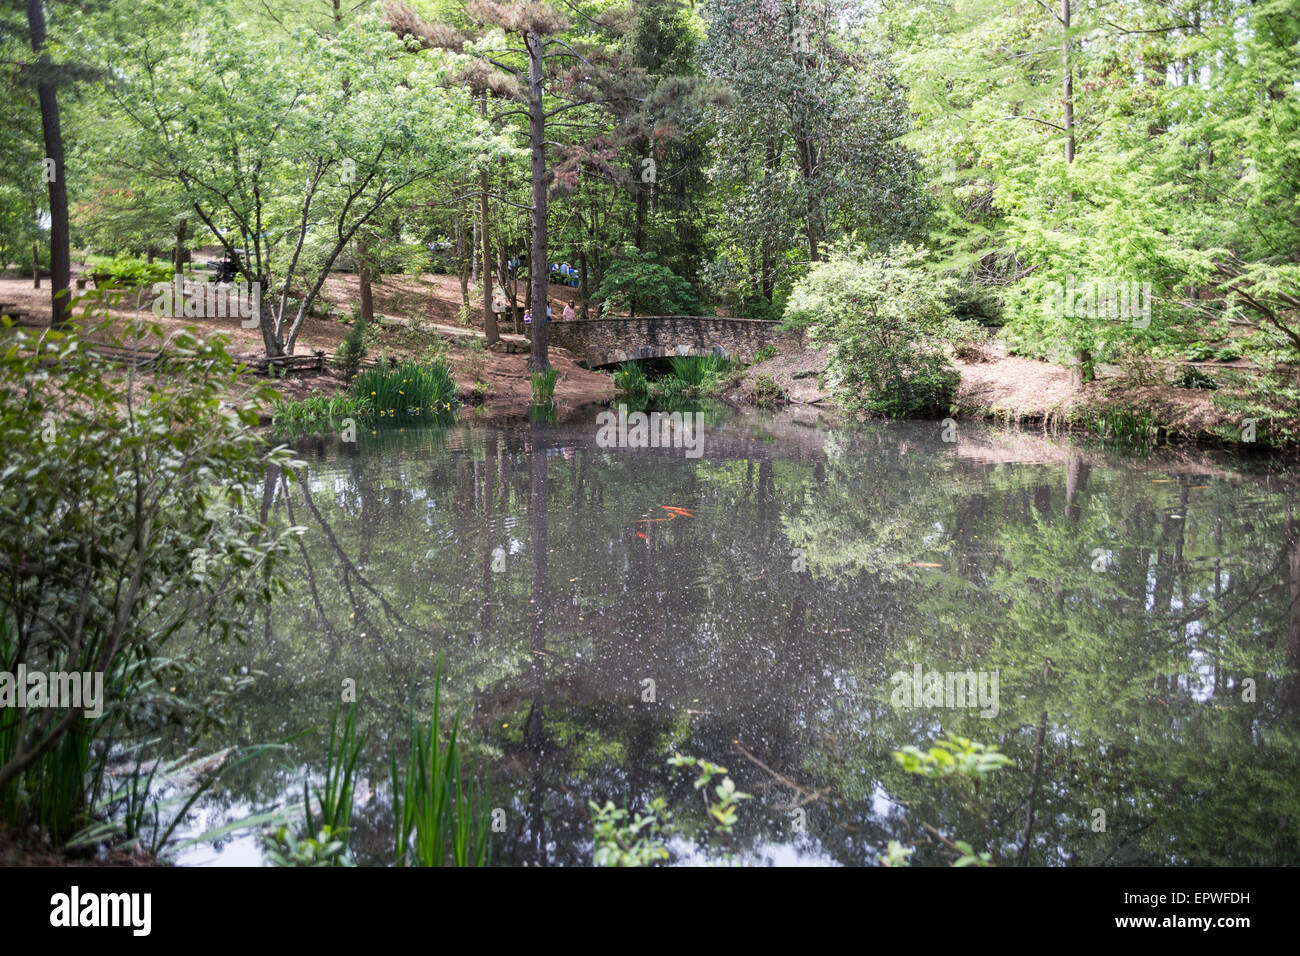 Heritage Pond, South Carolina Botanical Gardens, Clemson, South Carolina,  USA